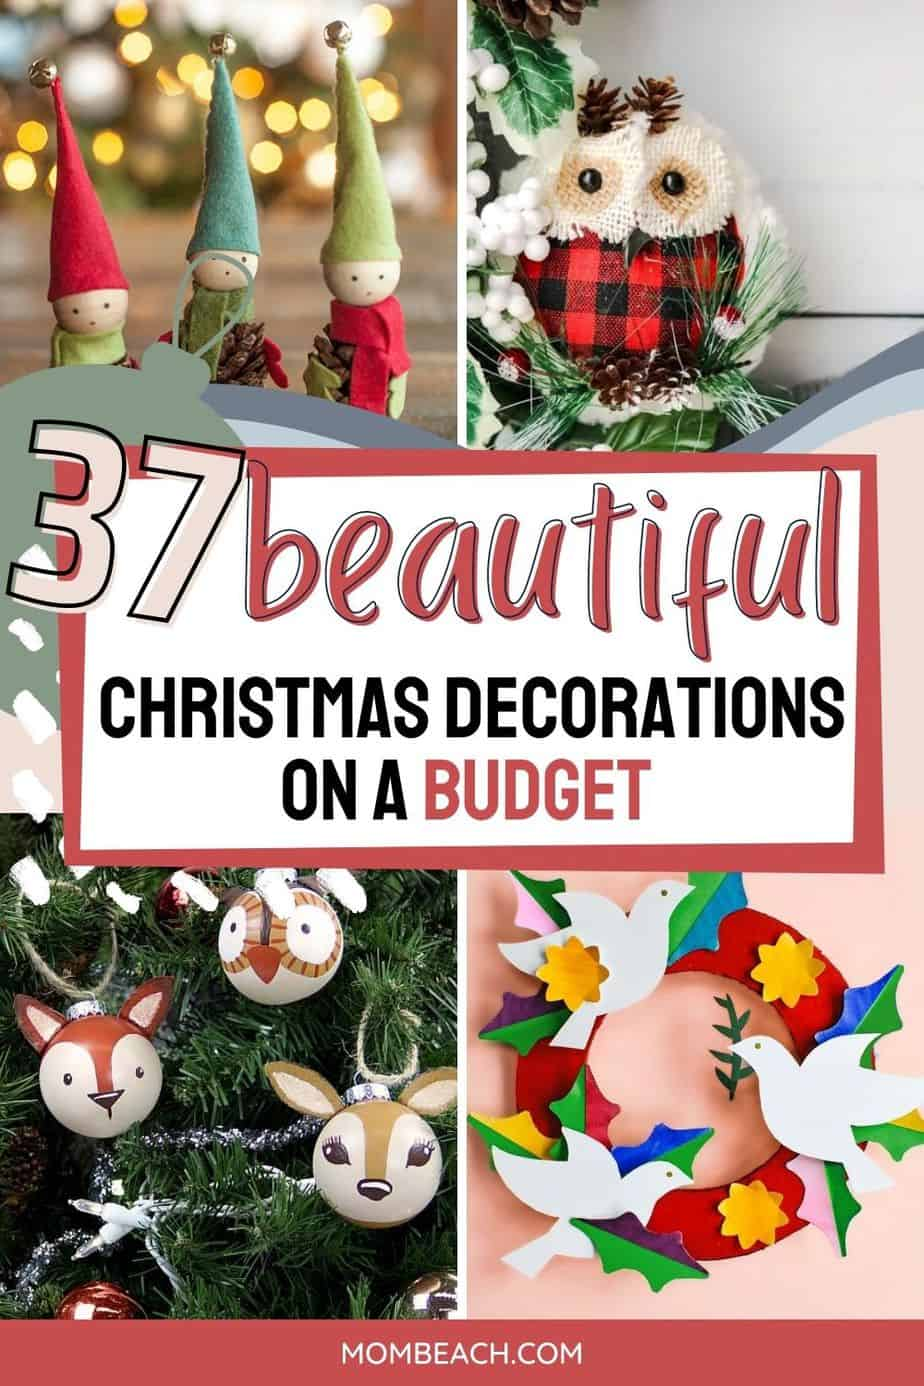 You won't believe how amazing these Christmas holiday decorations are that you can DIY! Most use supplies found at the dollar store! Save money by DIY this Christmas. No need to spend lots of money Christmas holiday decorations. Many of the decorations are for kids and for home. These DIY decorations are so easy and fun to make! You could even sell them to make money on Etsy.